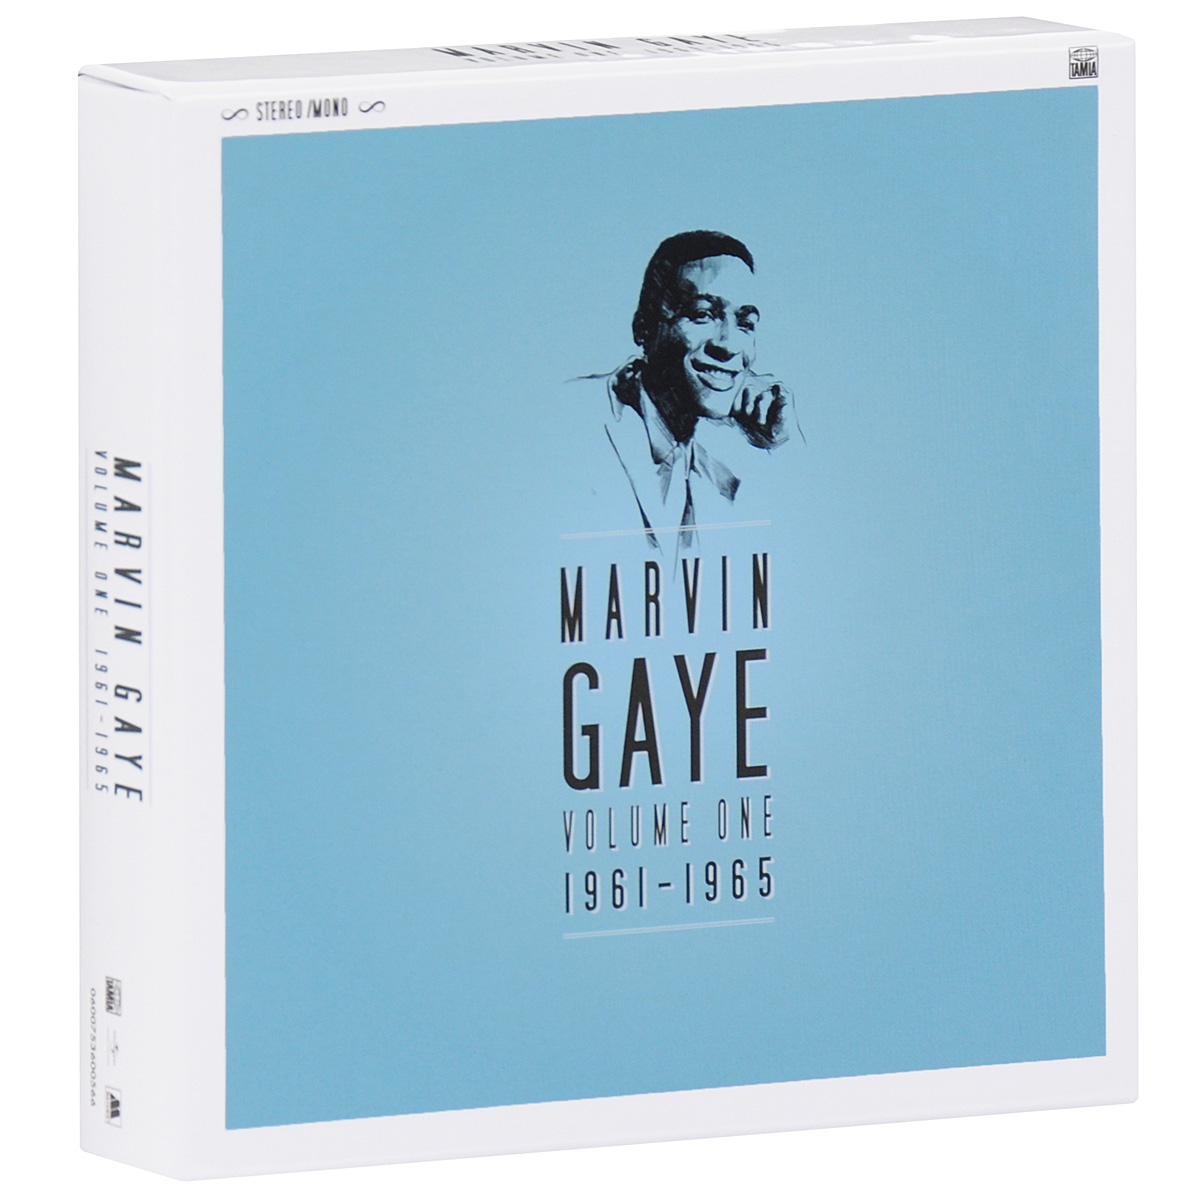 Марвин Гэй Marvin Gaye. Volume One. 1961 - 1965 (7 CD) марвин гэй marvin gaye volume jne 1961 1965 7 lp